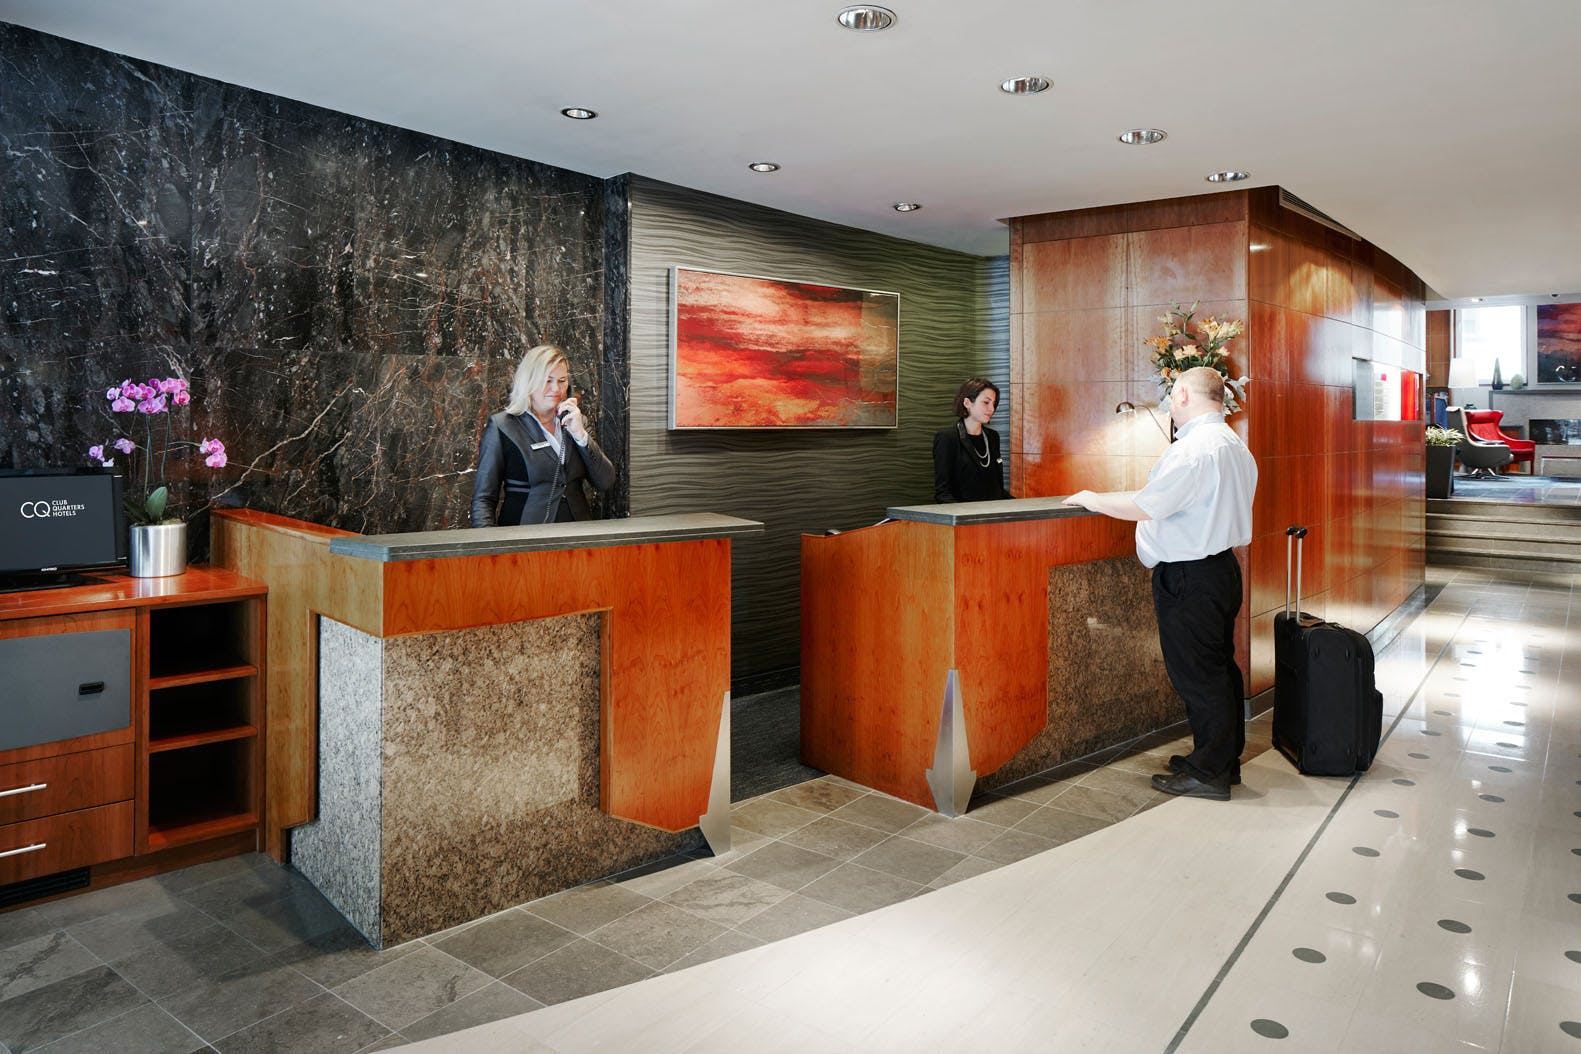 Member Service Desk at Club Quarters Hotel, St. Paul's, London